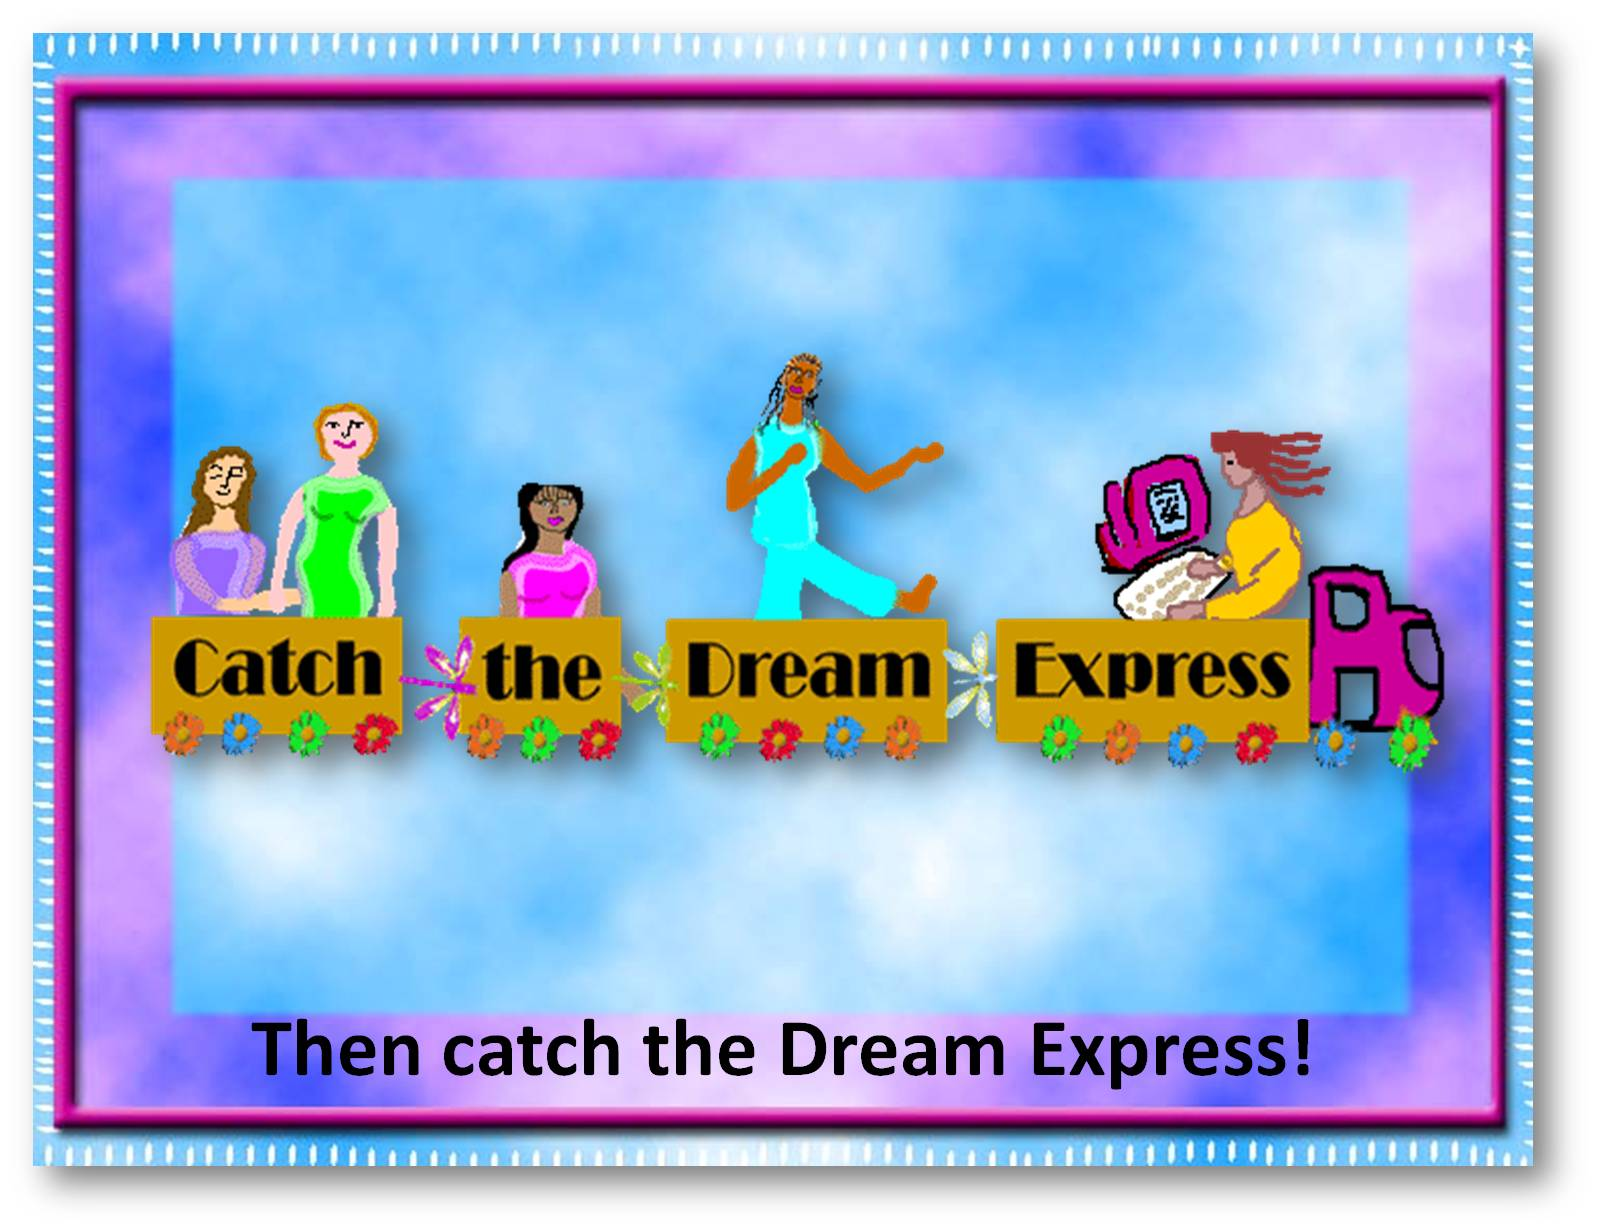 dreamexpress-virtualtourB-slide20-catchthedreamexpress